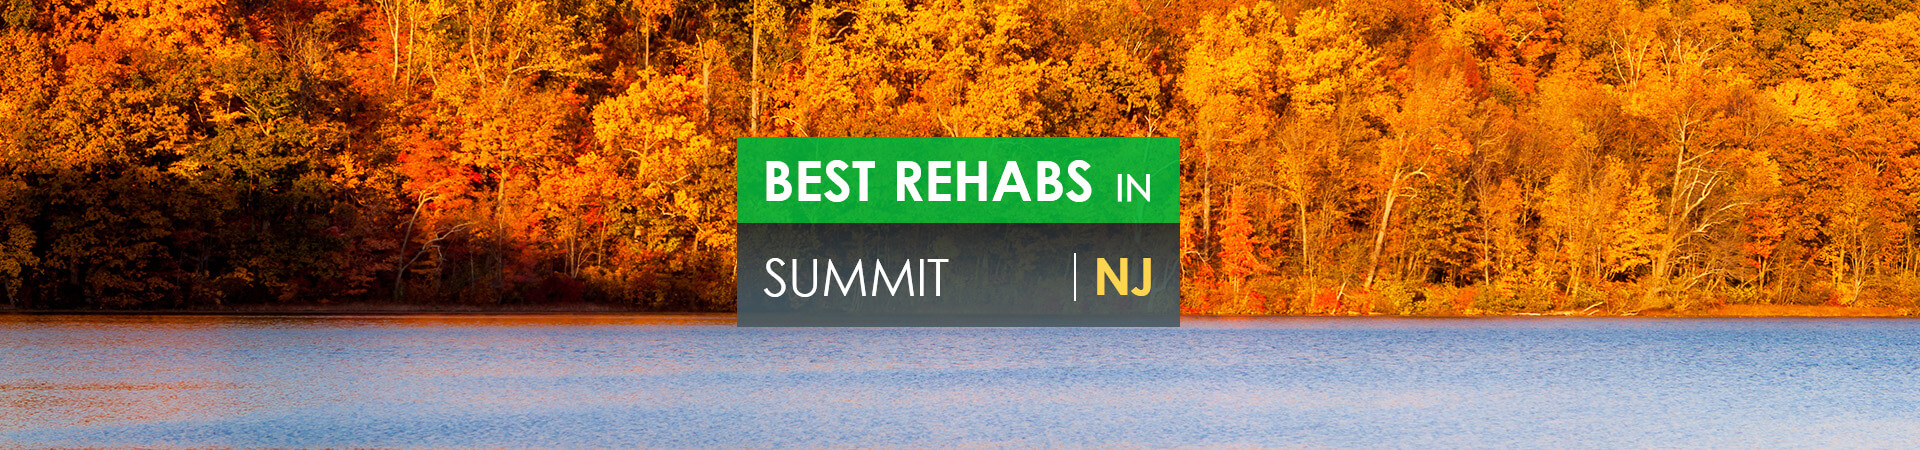 Best rehabs in Summit, NJ